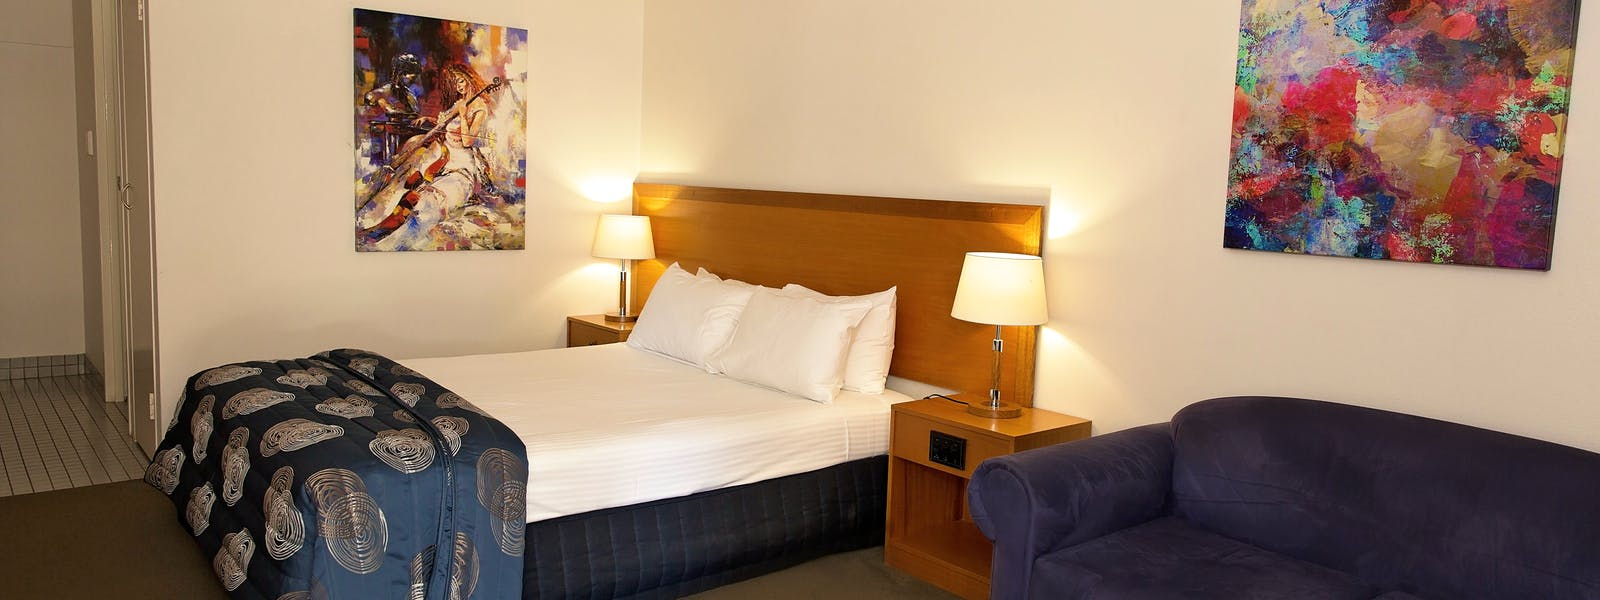 Best accommodation deals in Mackay